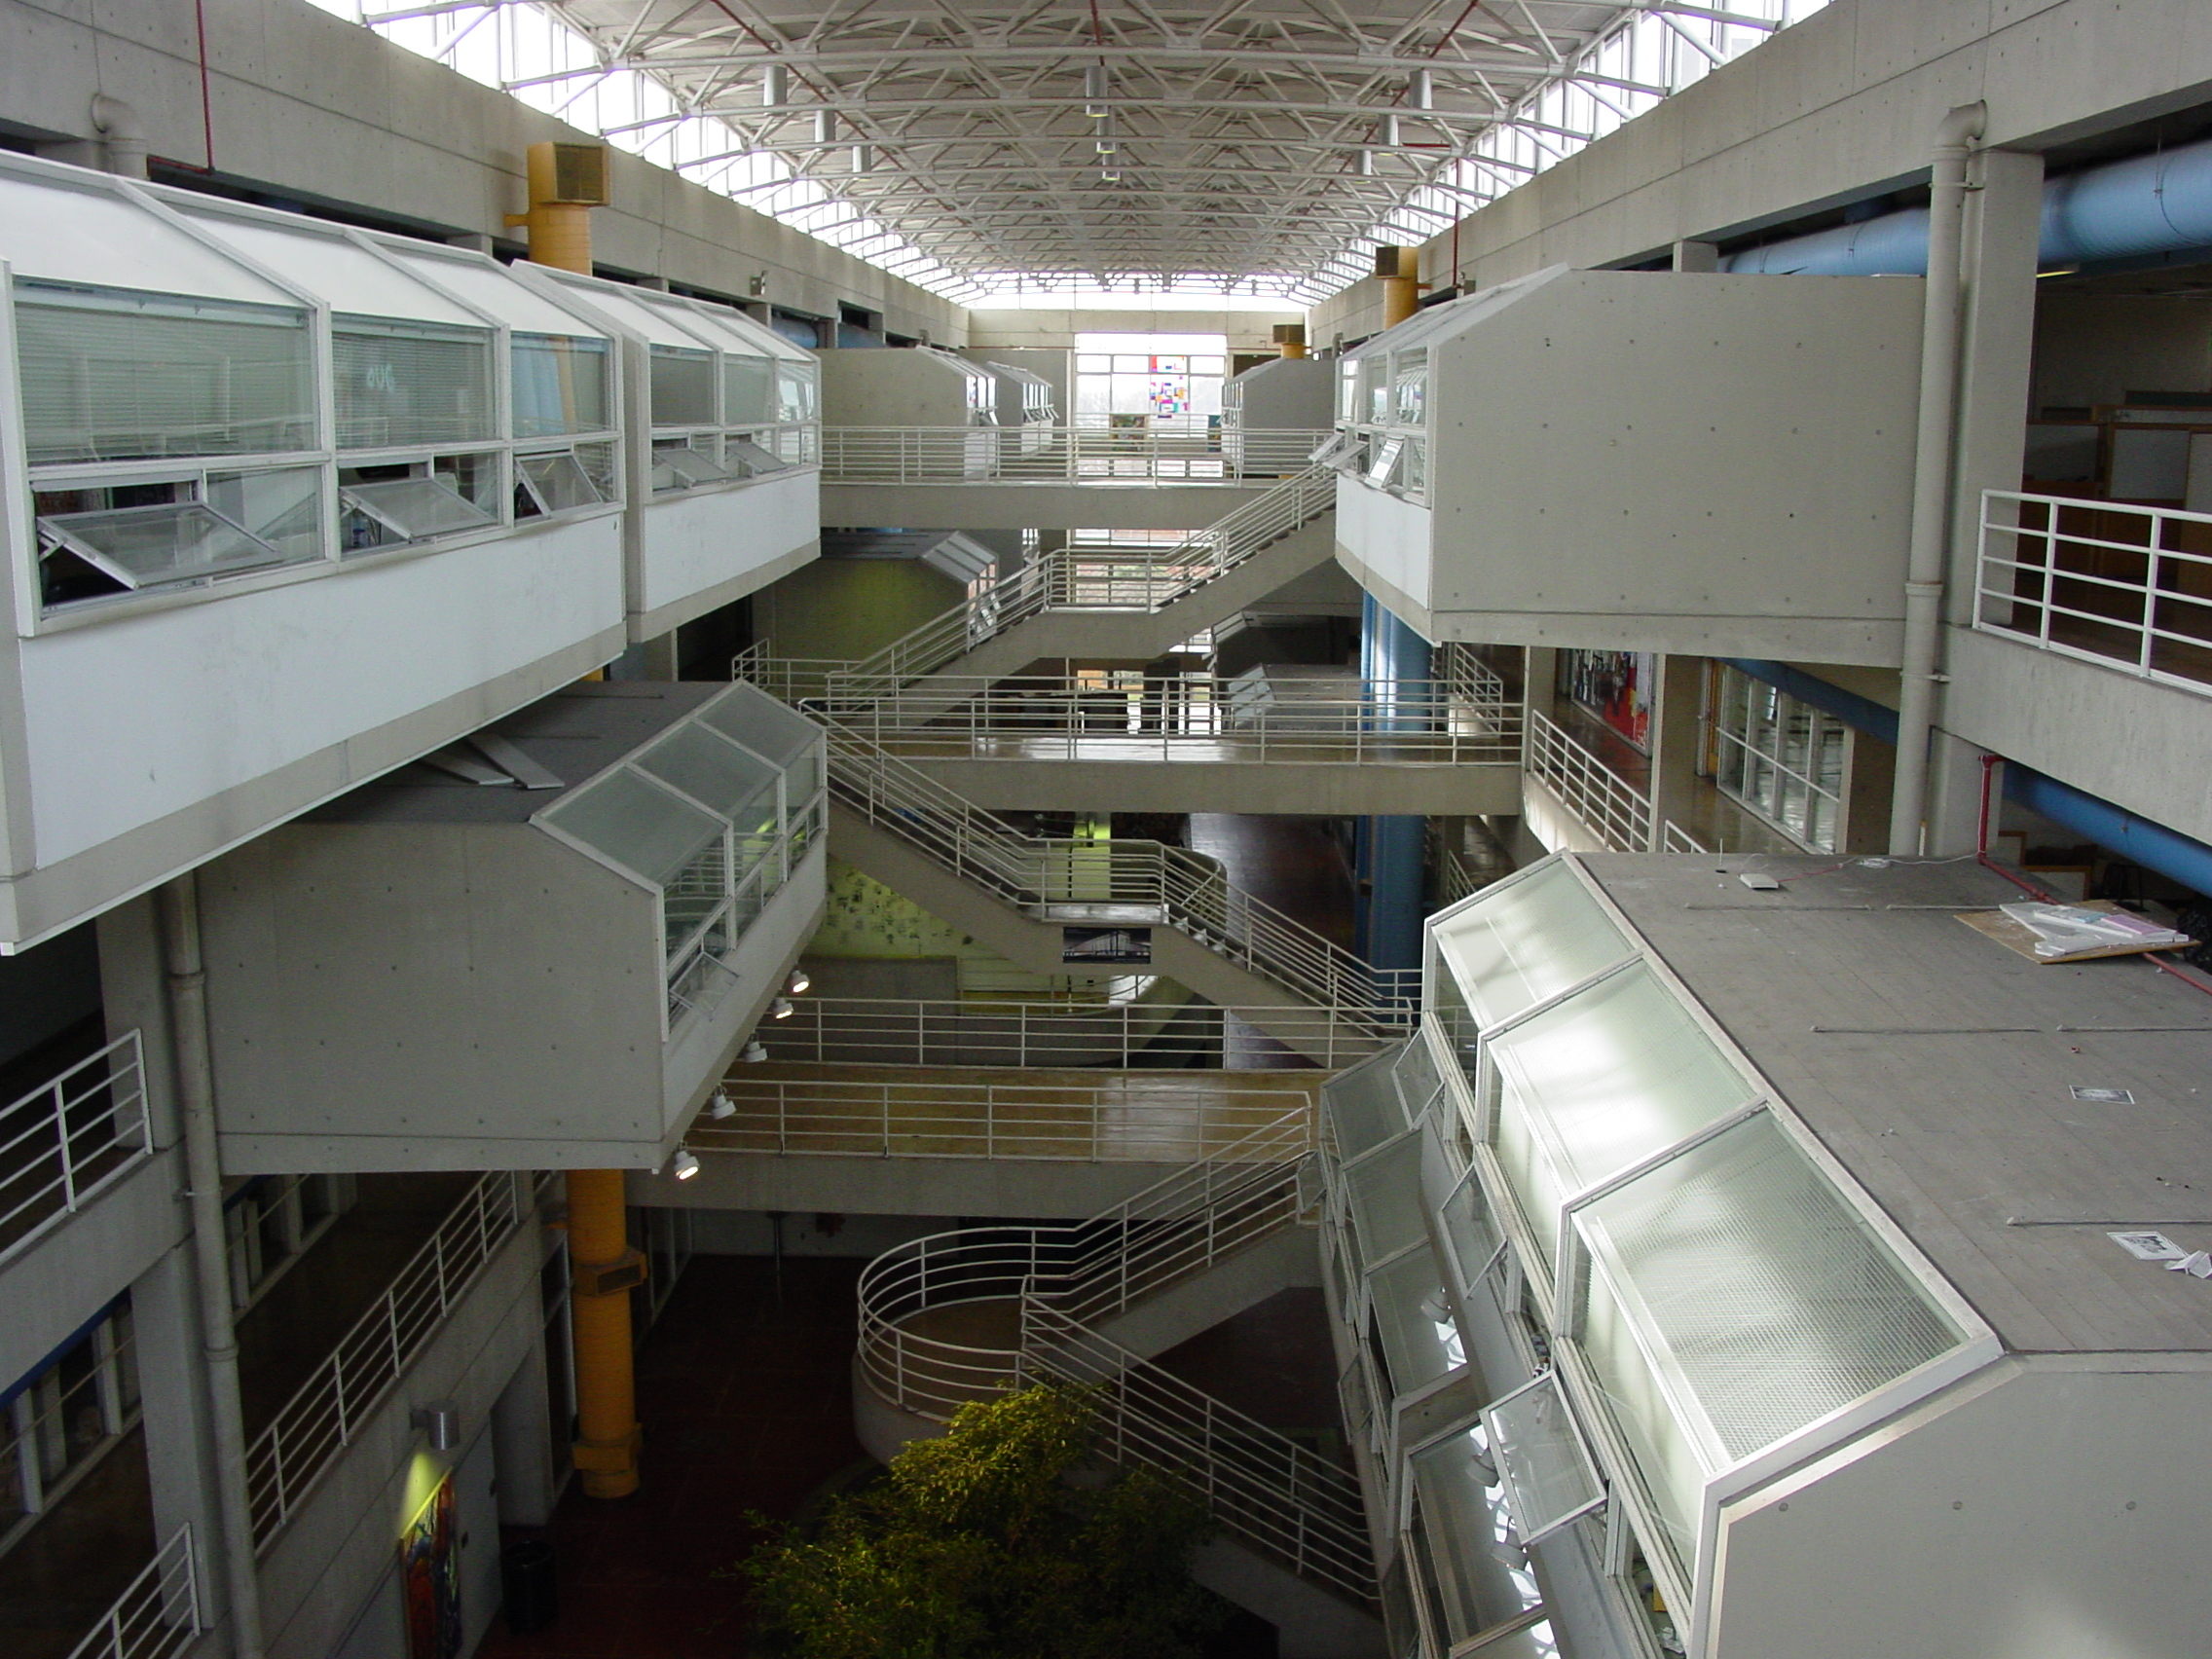 The Gaines Group Architects 75 UT Art and Architecture Building